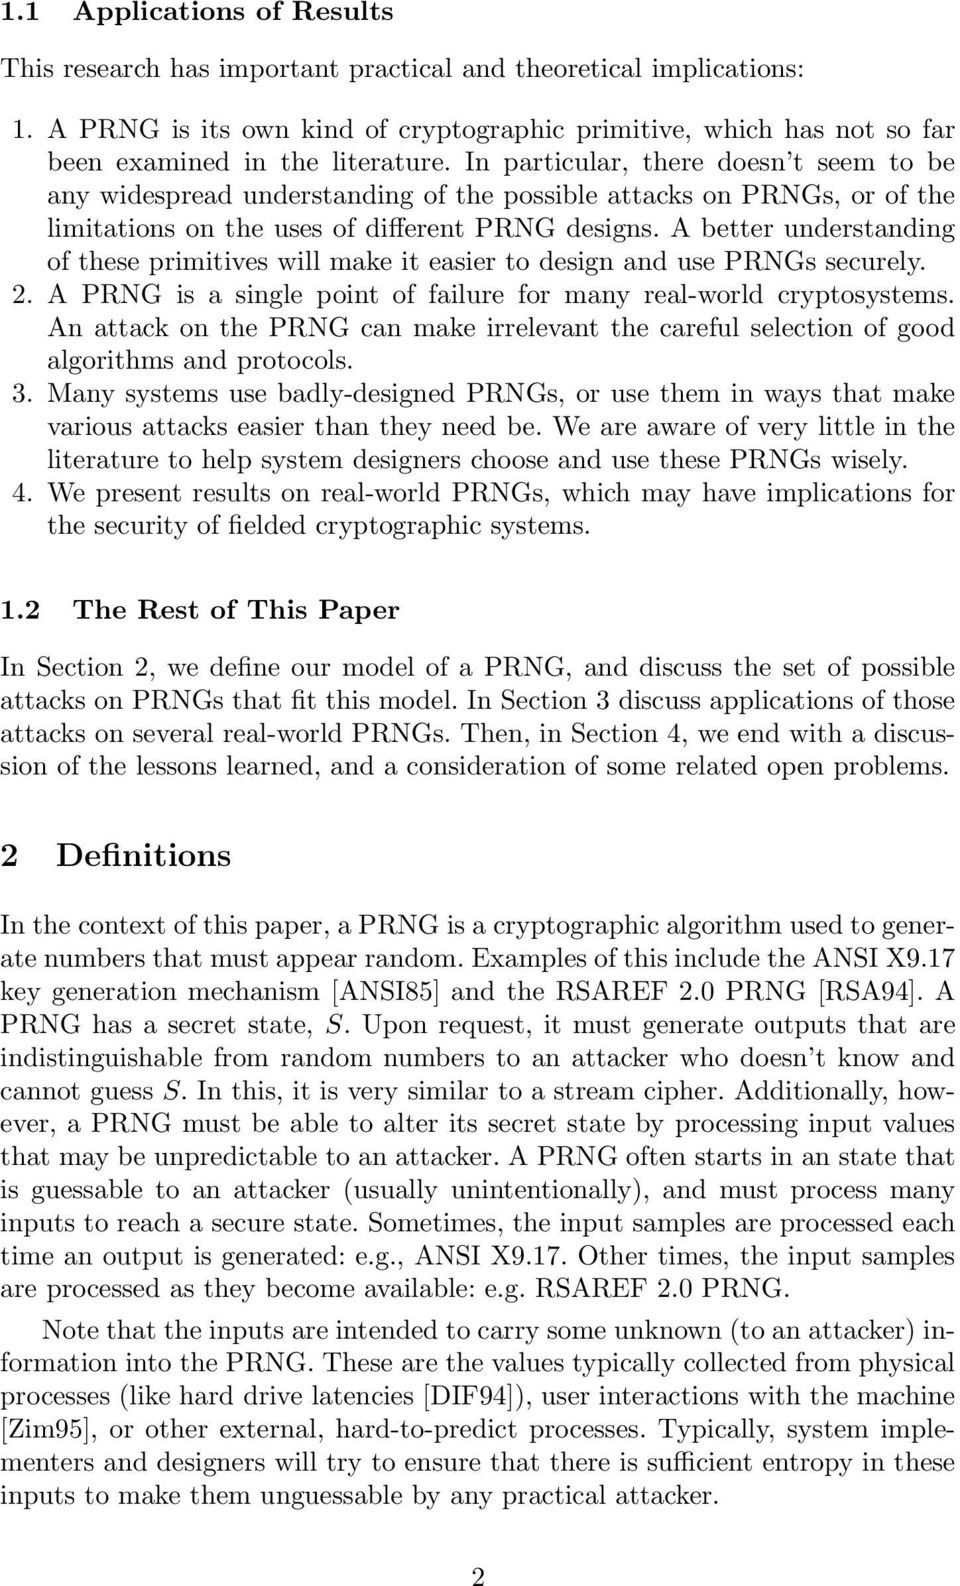 In particular, there doesn t seem to be any widespread understanding of the possible attacks on PRNGs, or of the limitations on the uses of different PRNG designs.